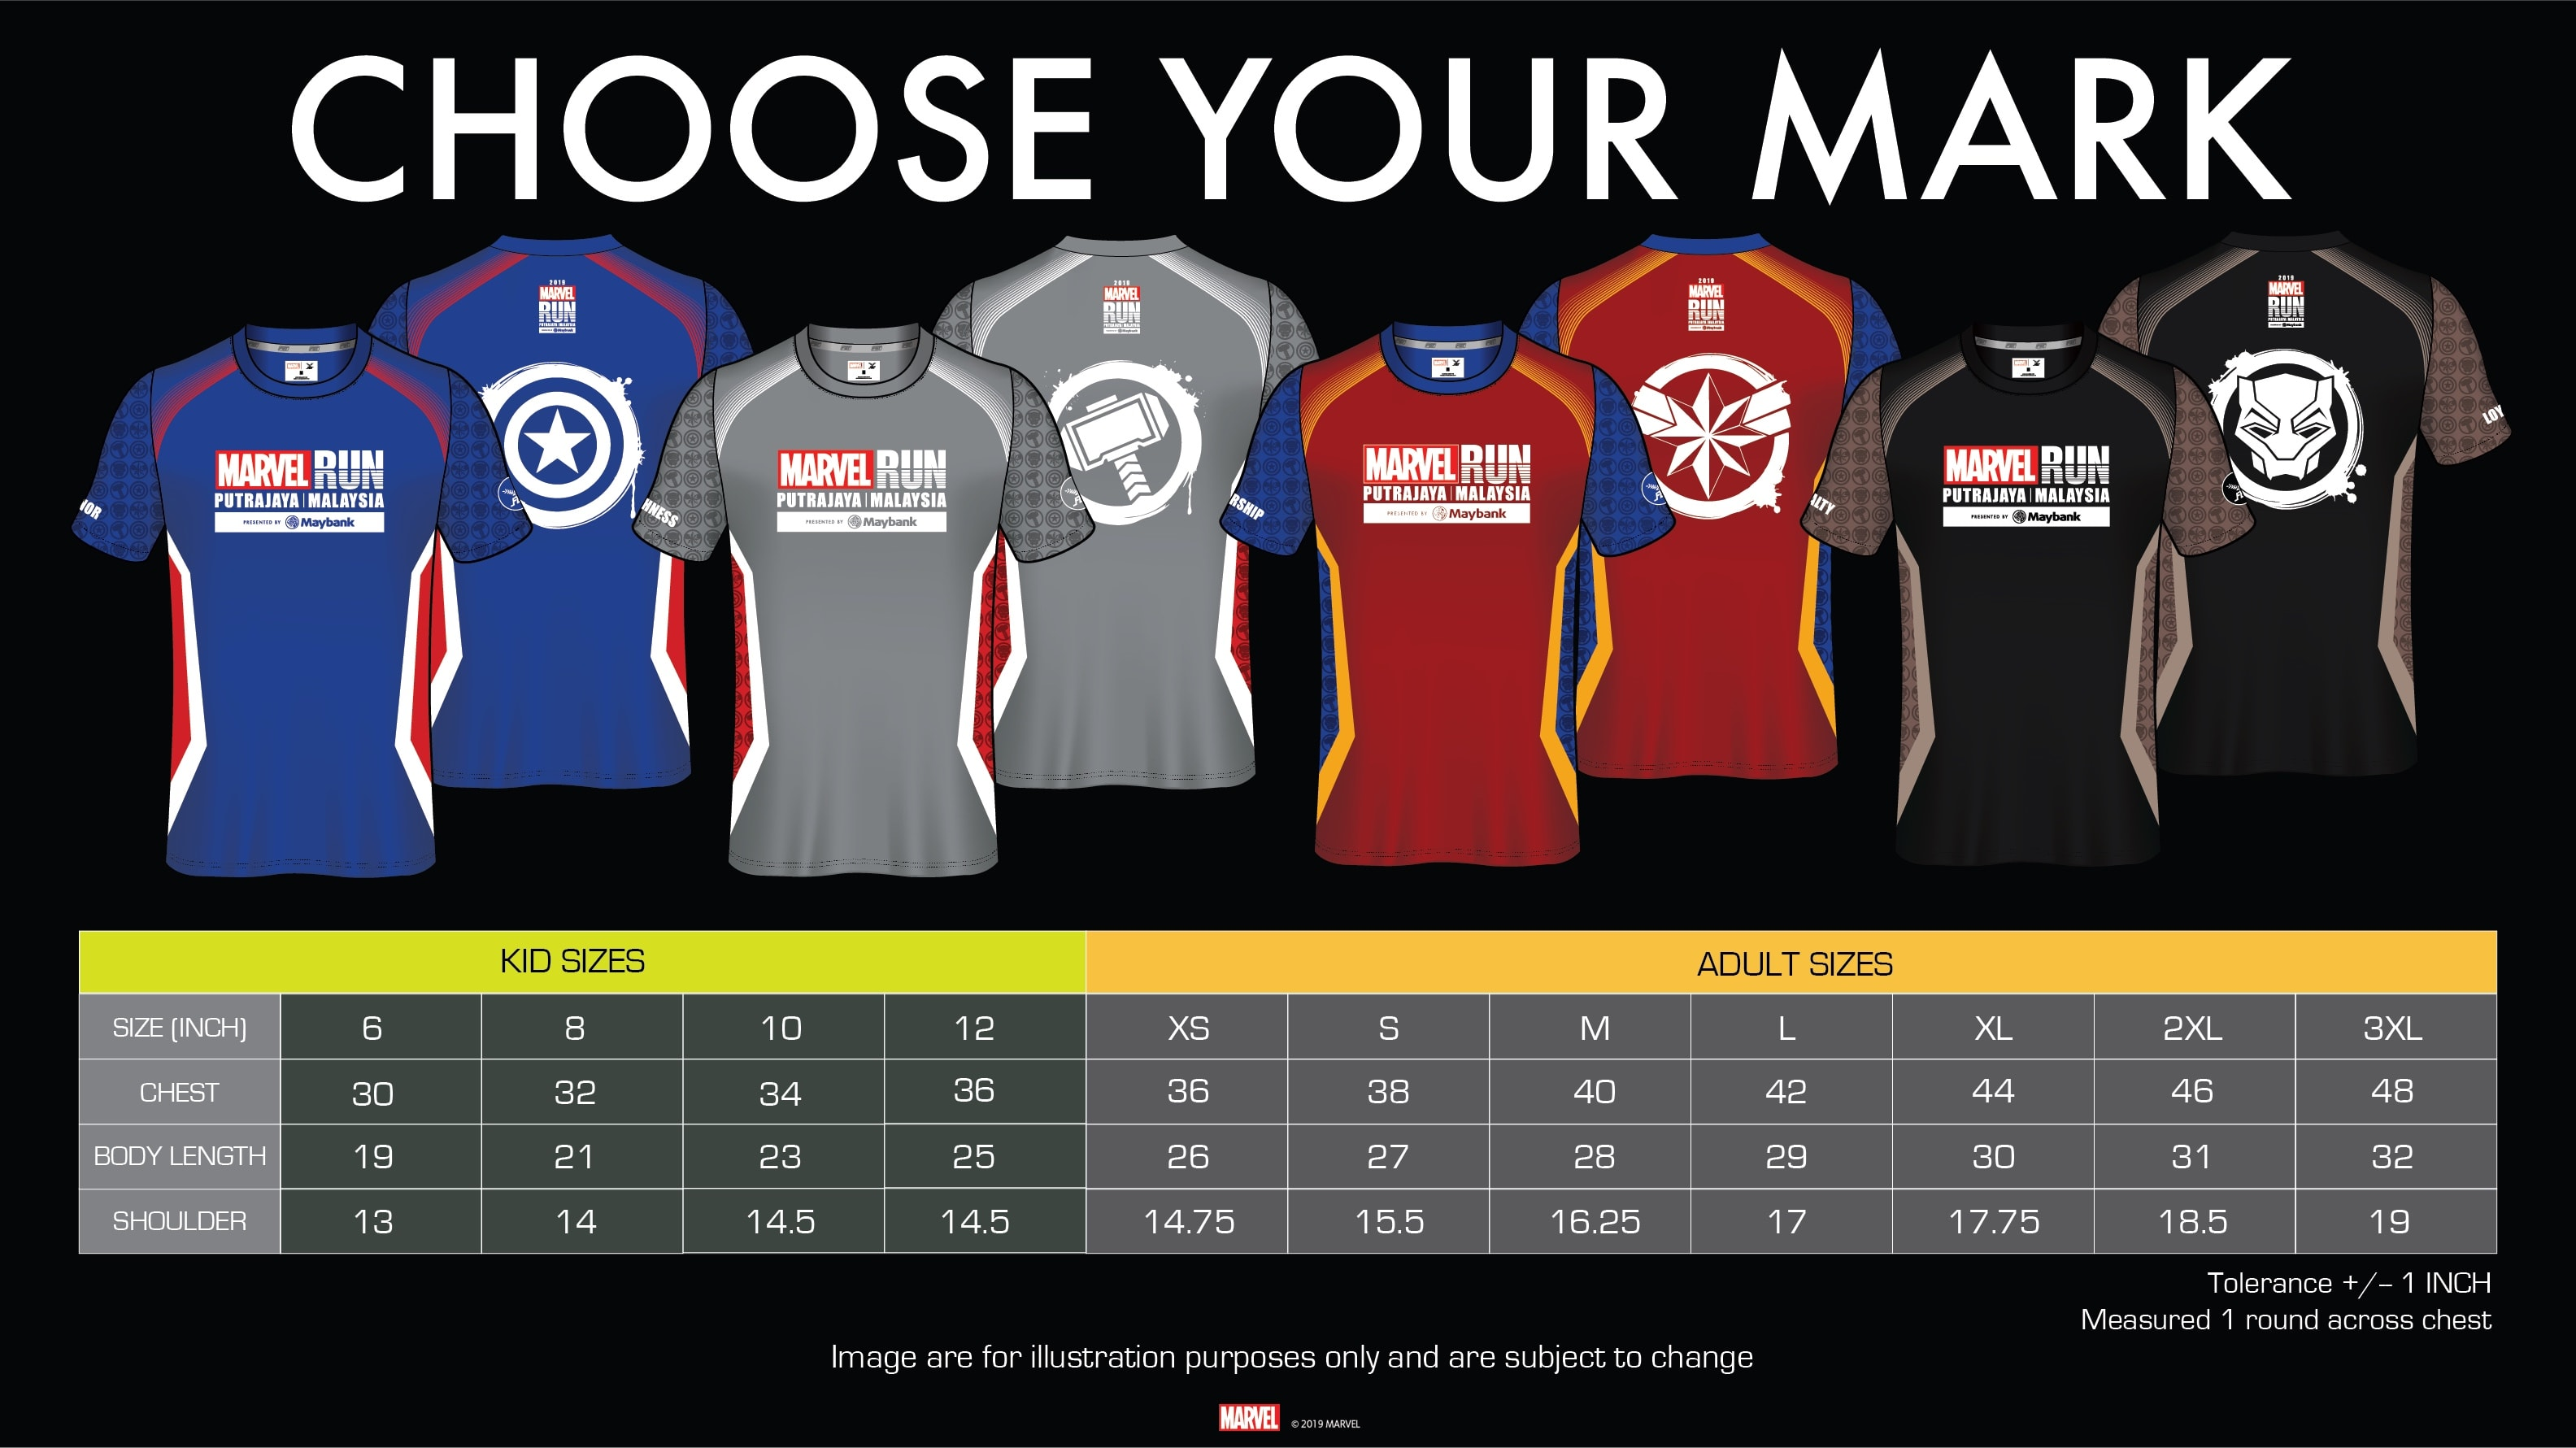 MARVEL RUN Is Coming To Malaysia And Early Bird Tickets Are On Sale